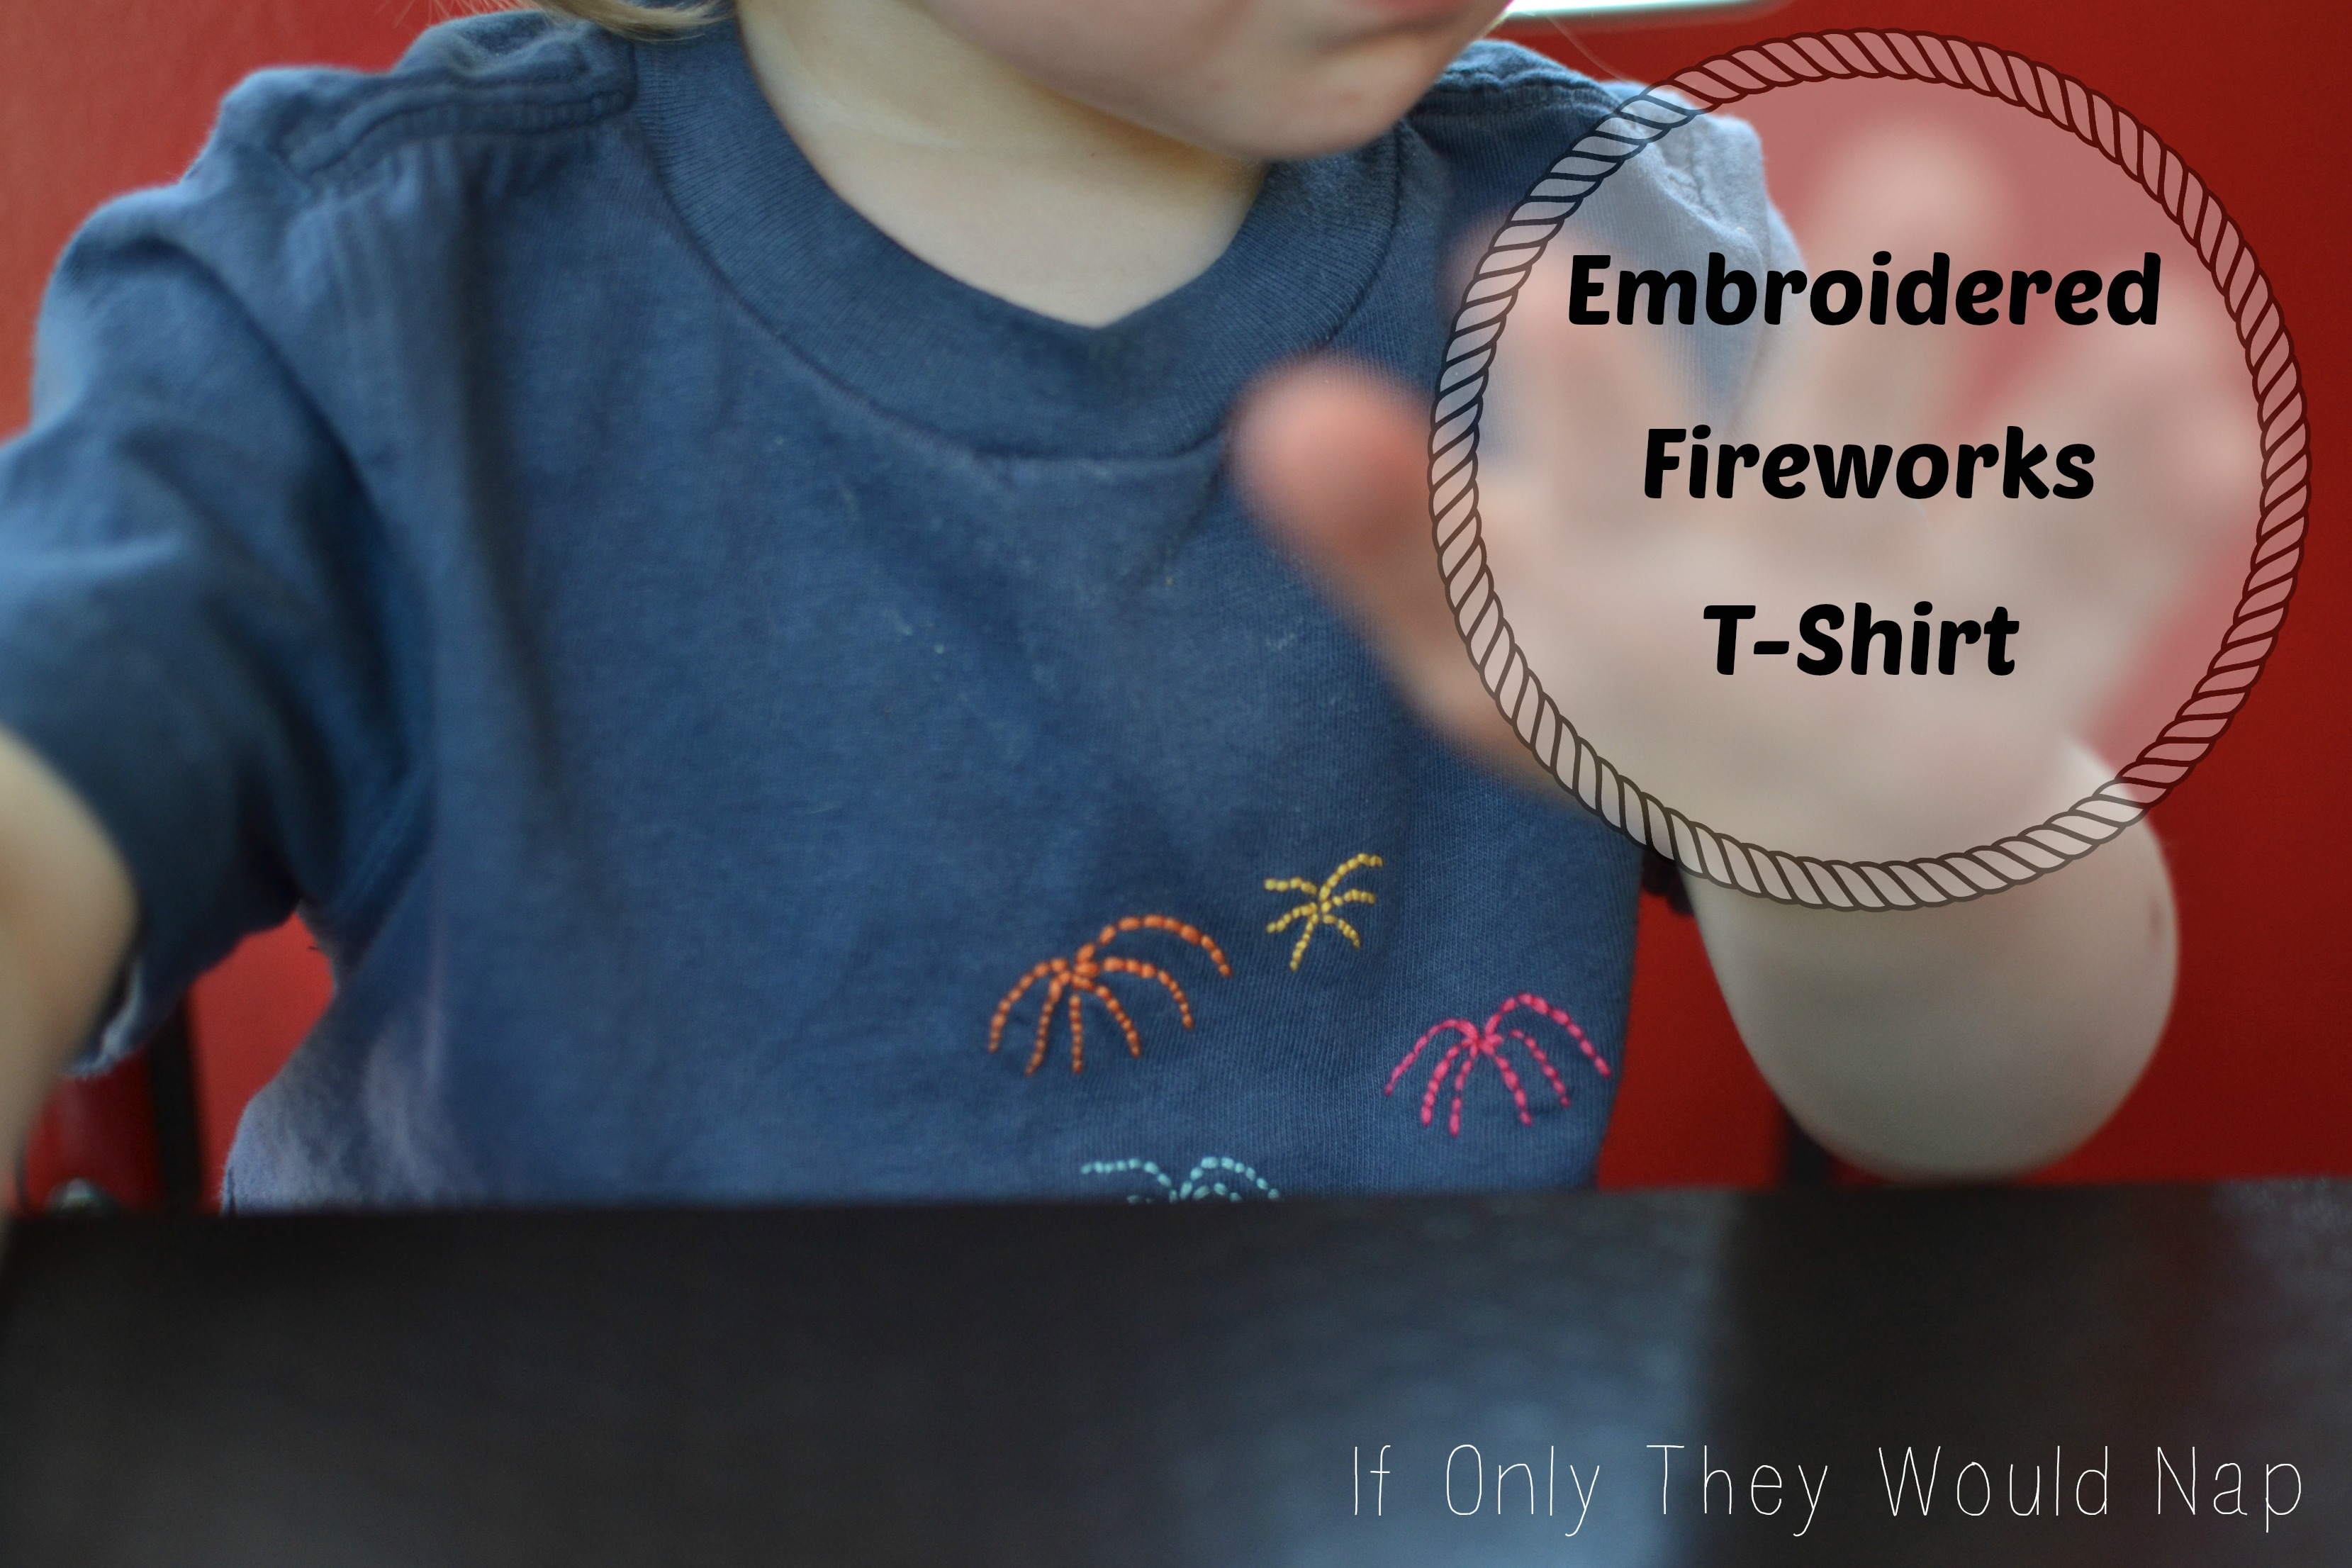 Embroidered Fireworks T-shirt